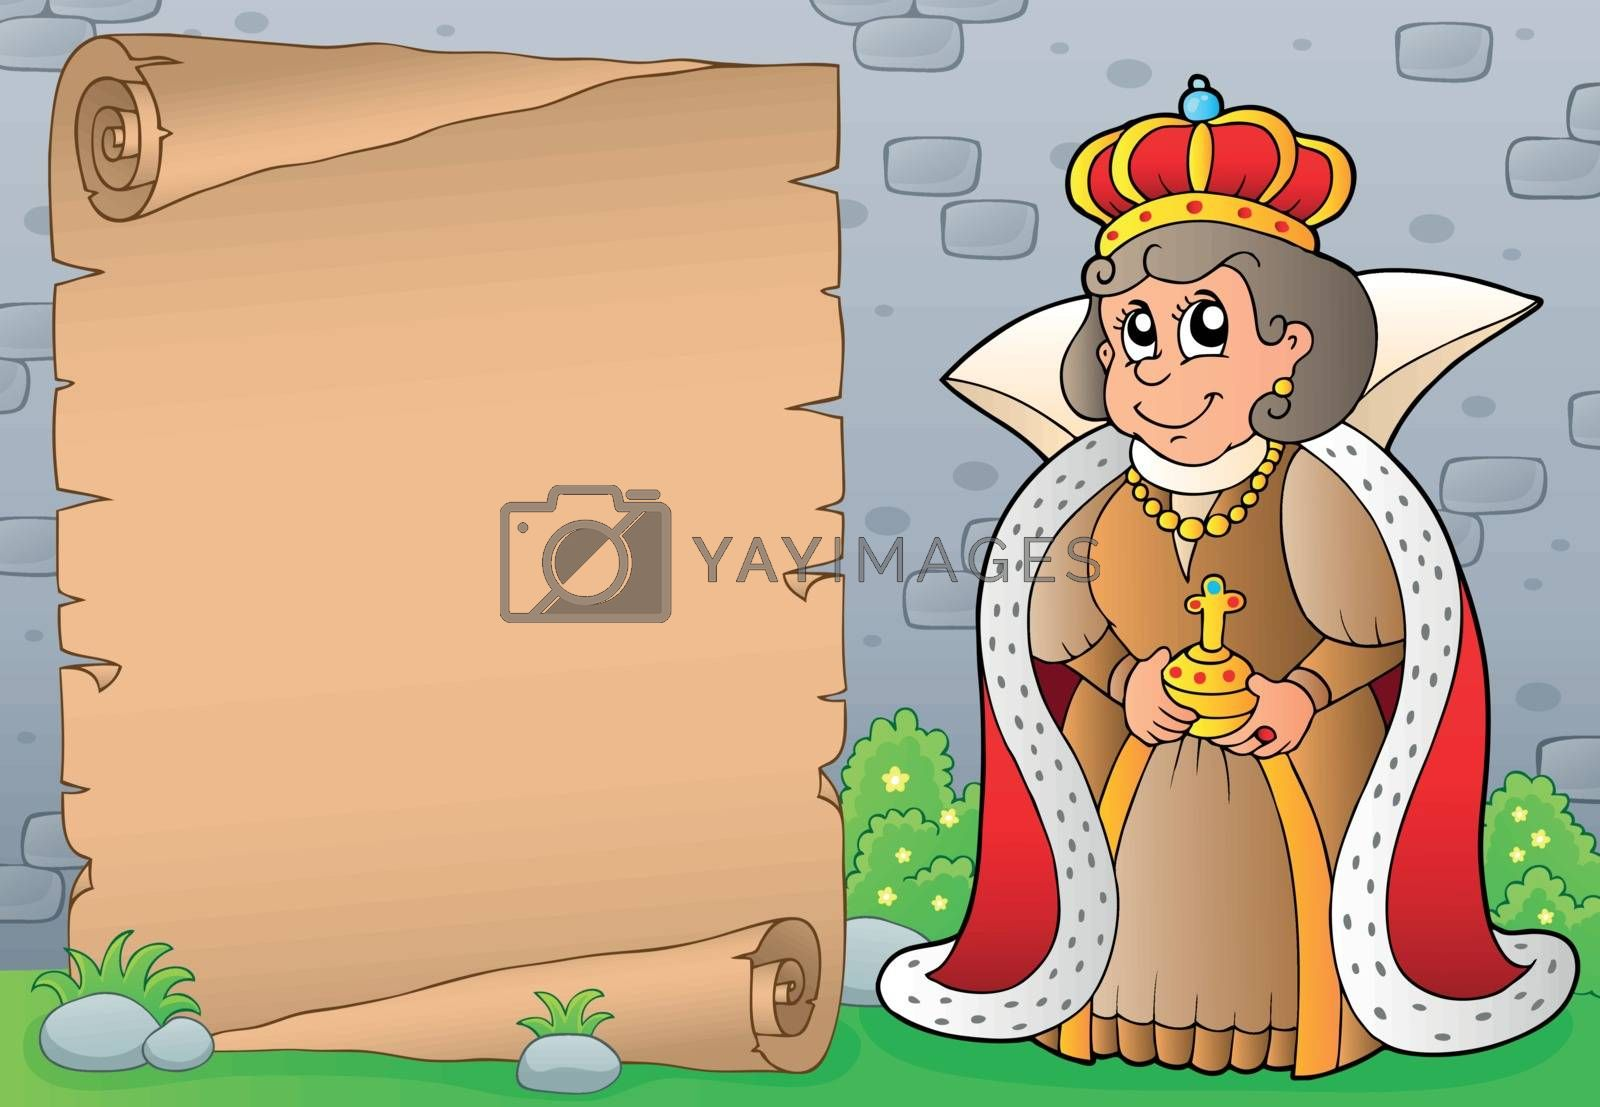 Queen topic parchment 1 - eps10 vector illustration.